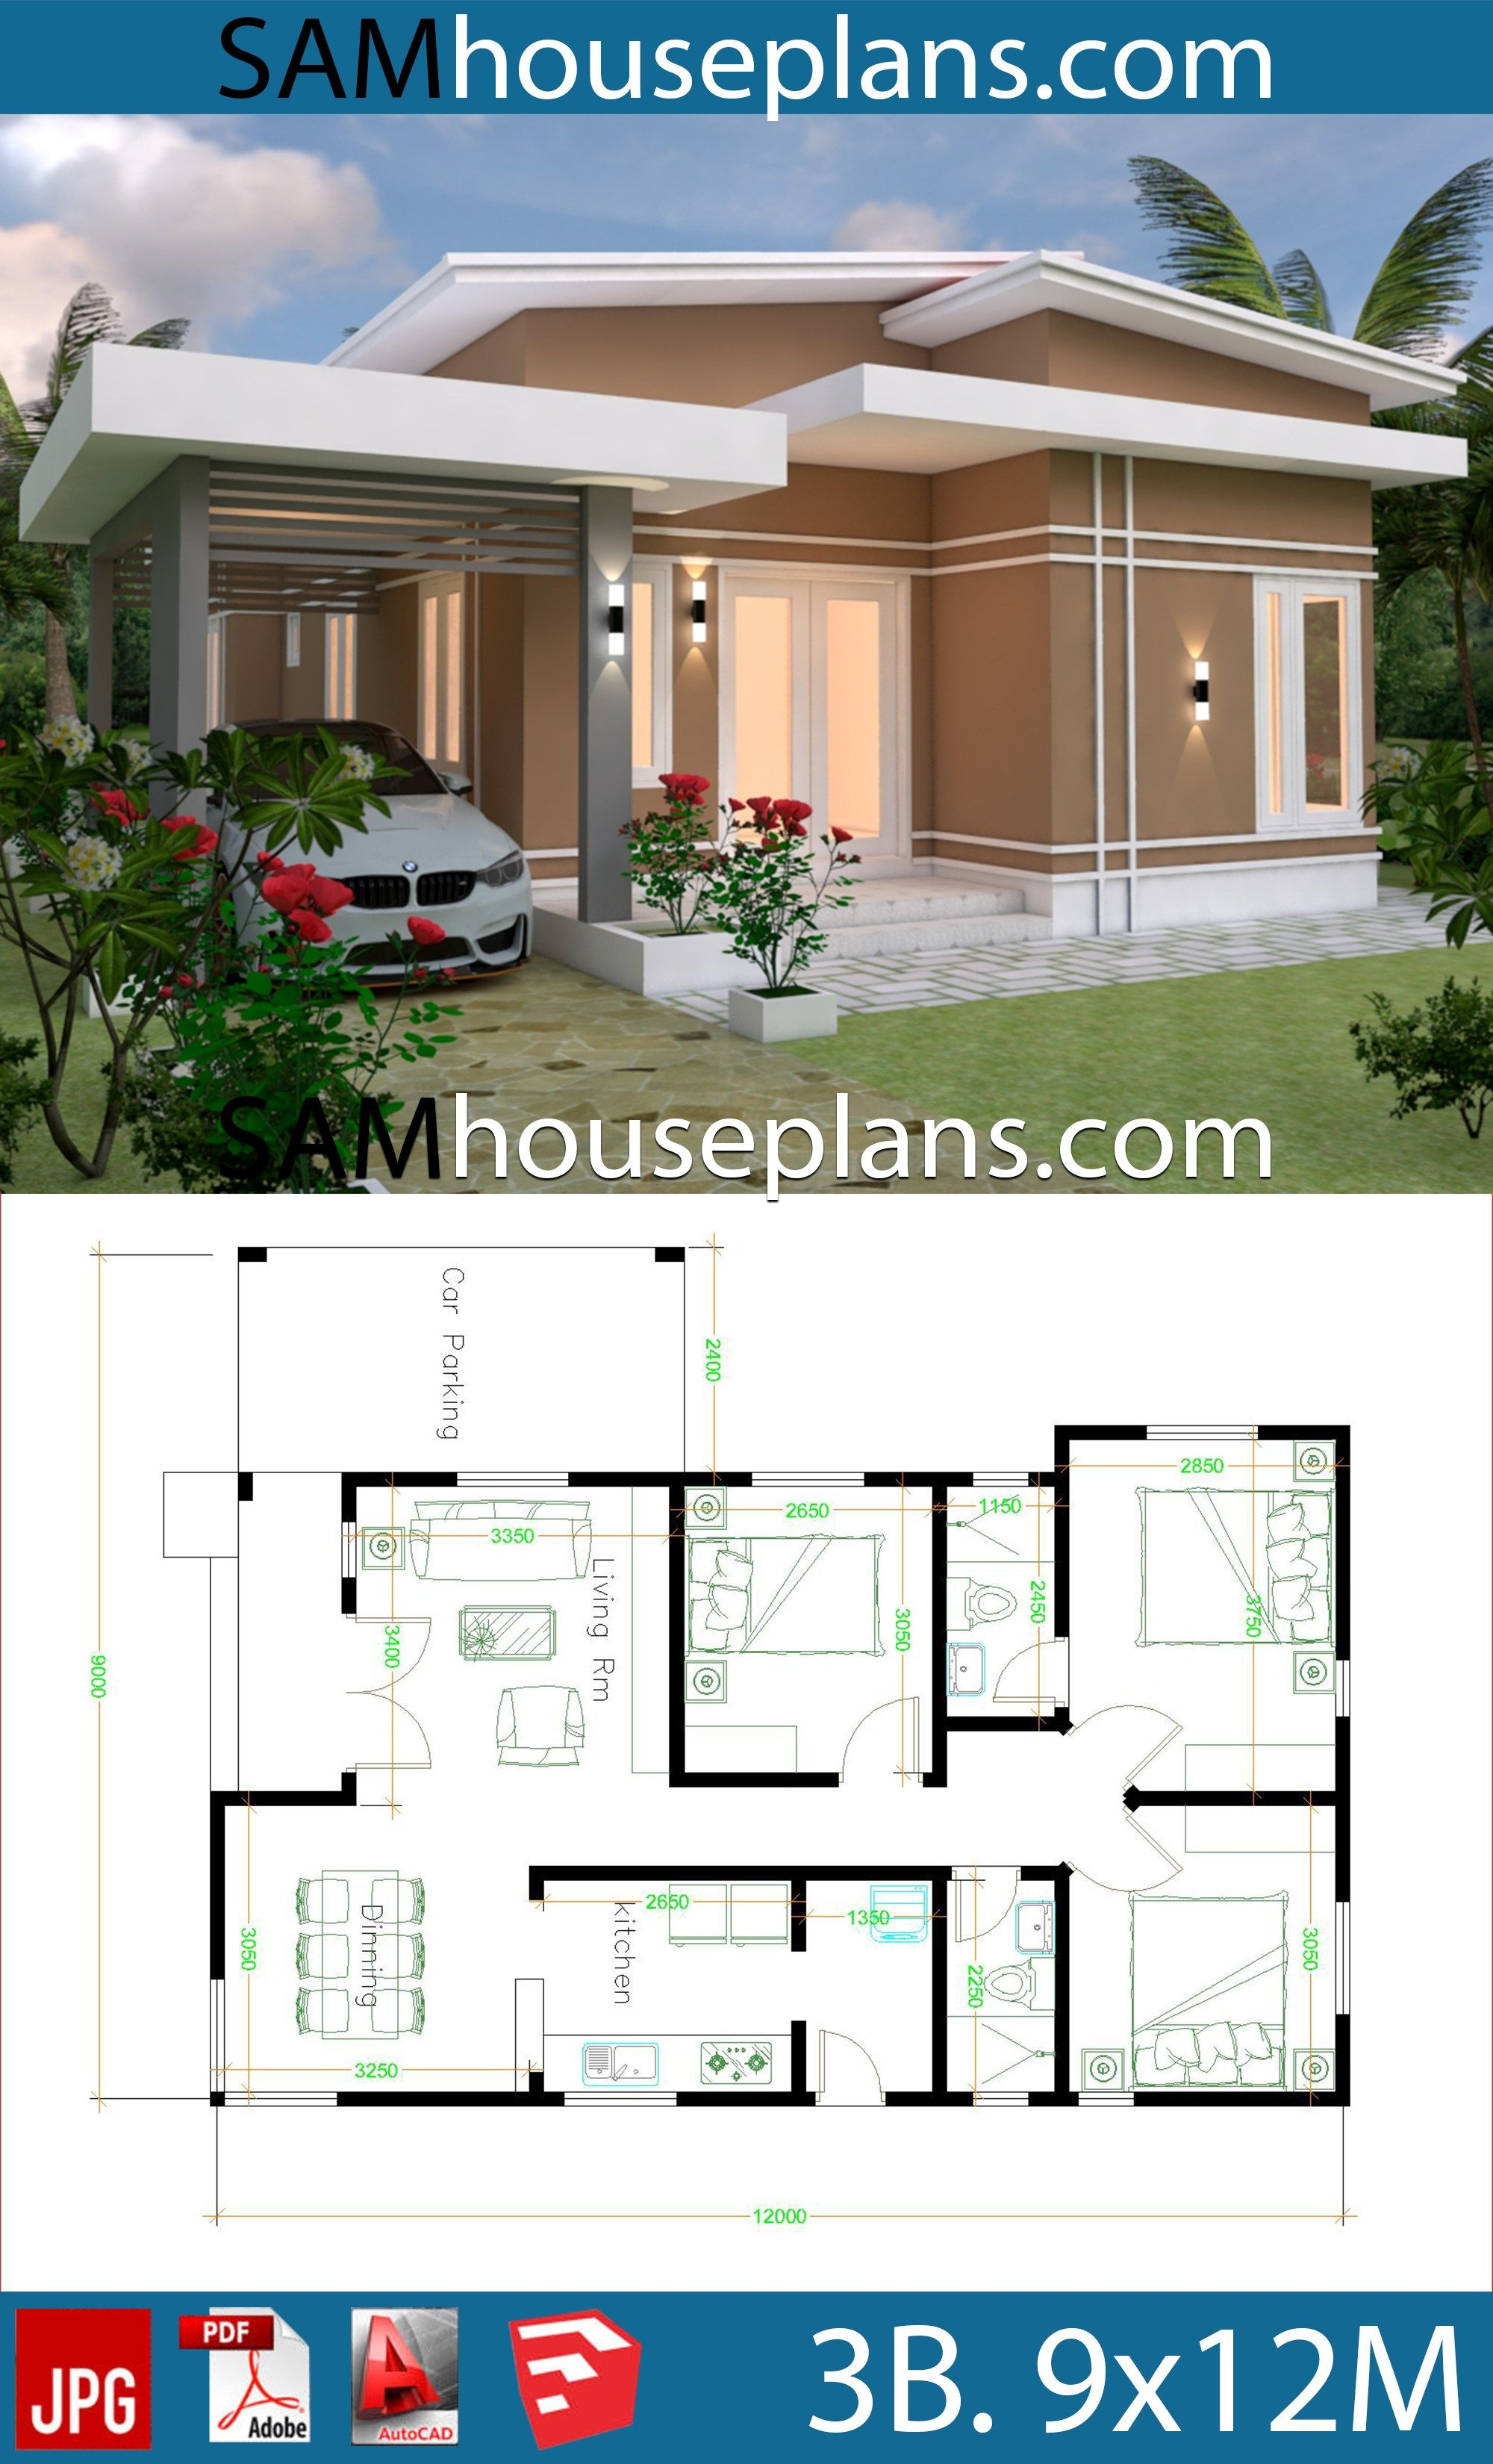 House Plans 9x12 With 3 Bedrooms Roof Tiles Sam House Plans Affordable House Plans Small House Design Plans Modern Bungalow House